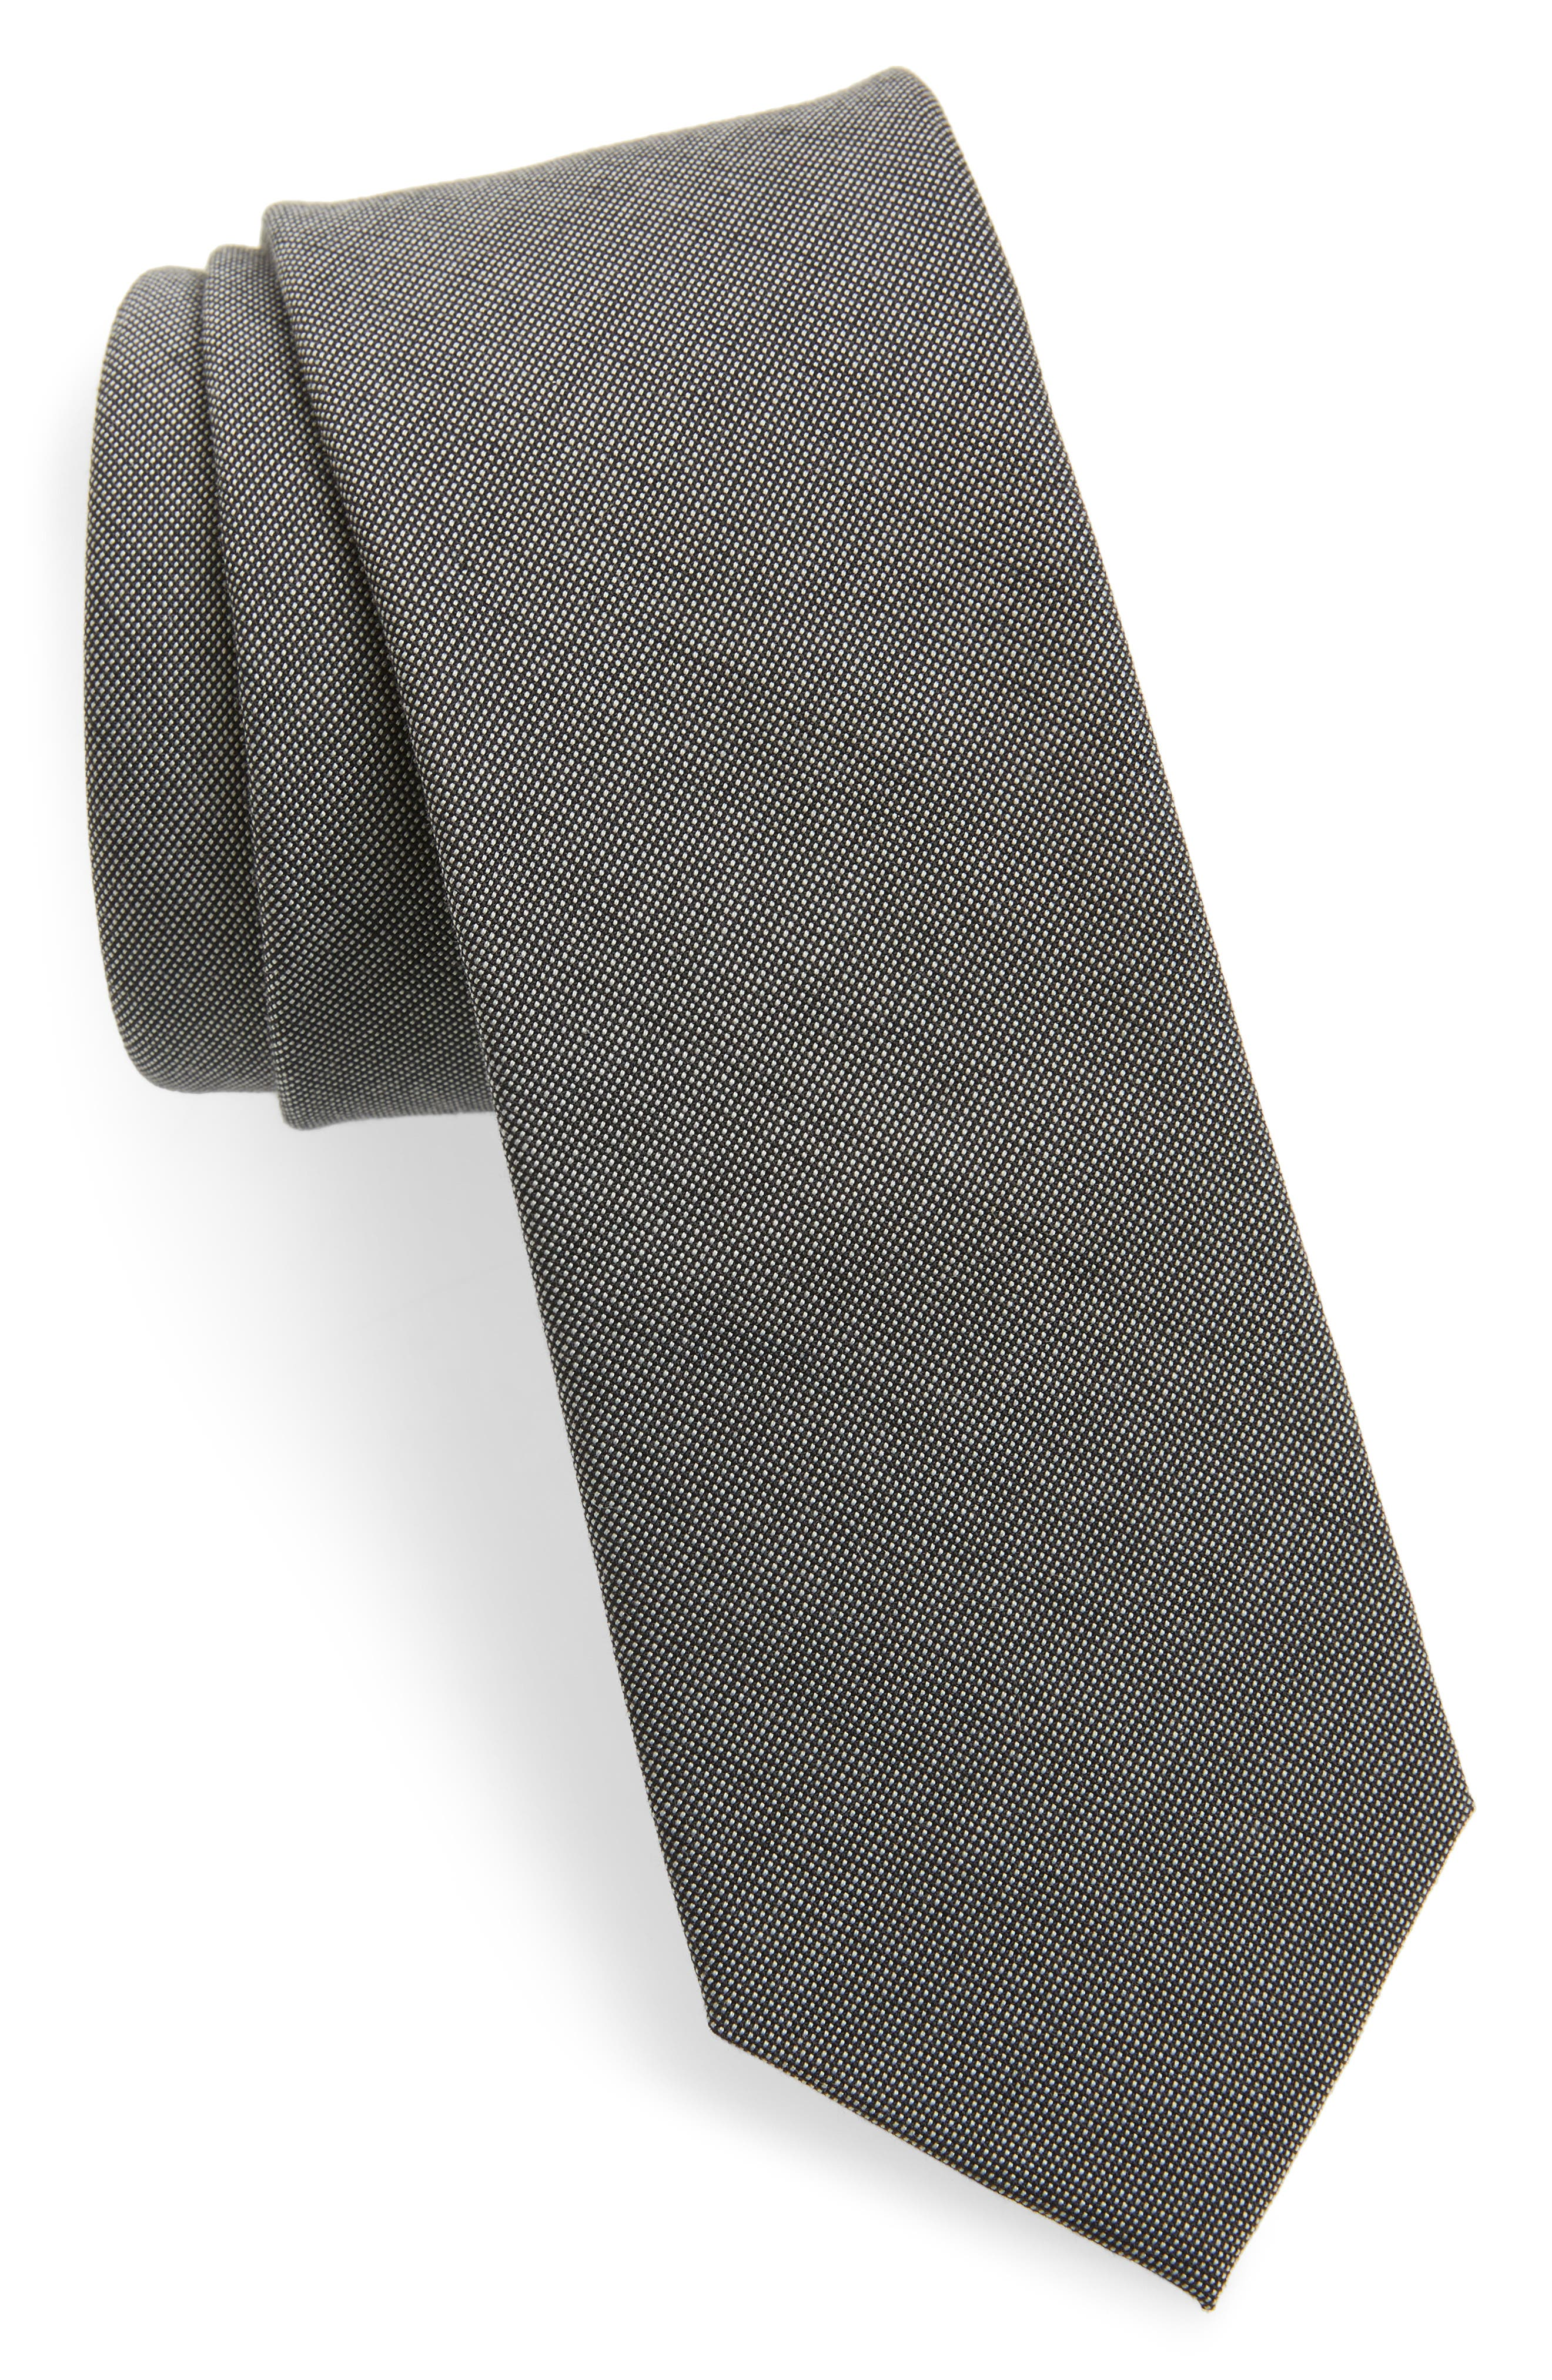 Bunker Solid Tie,                             Main thumbnail 1, color,                             Onyx